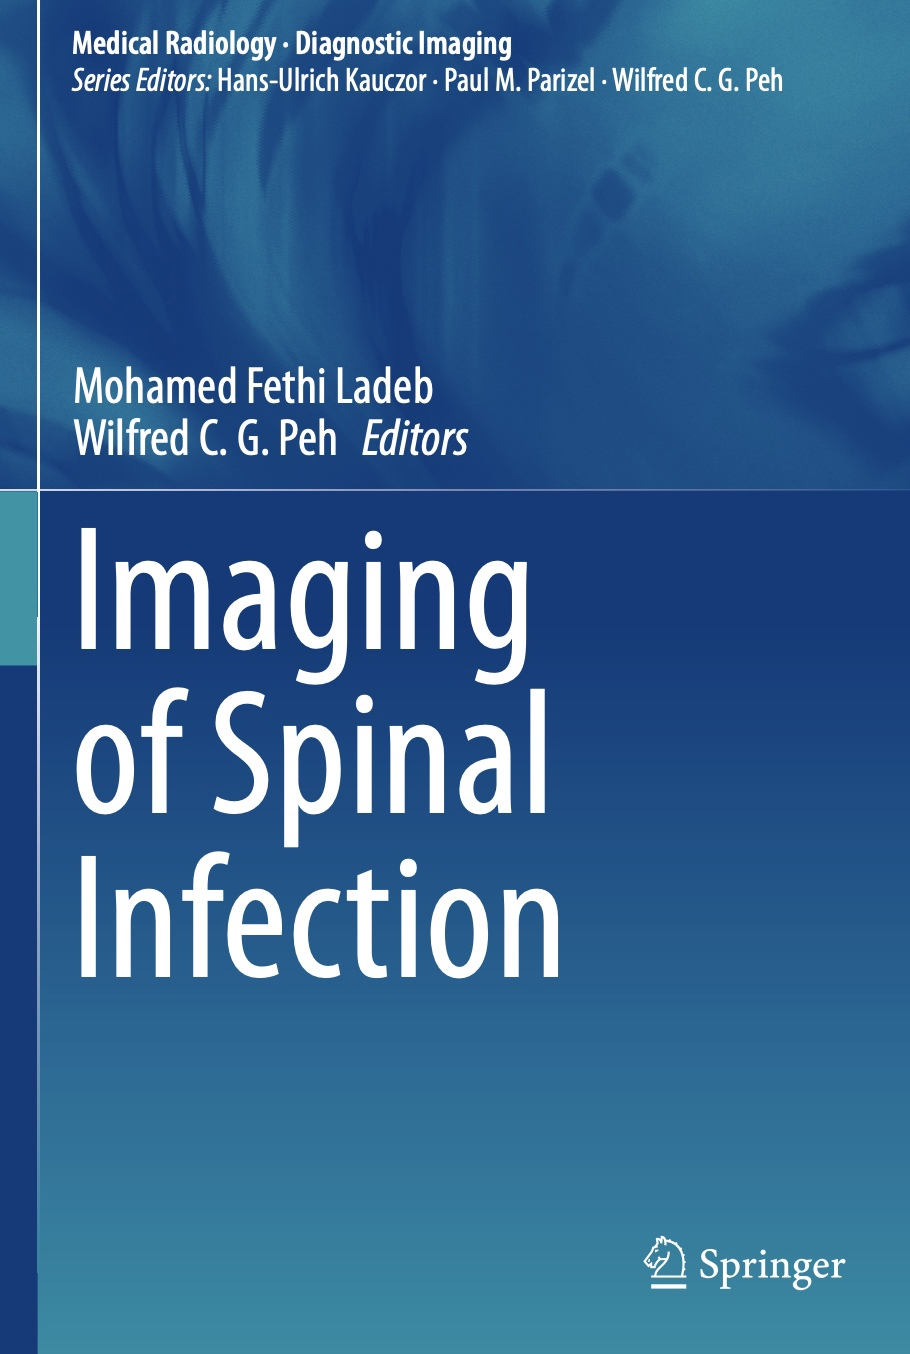 Imaging Spinal Infection (Fethi Ladeb) vW1chC2zDMM.jpg?size